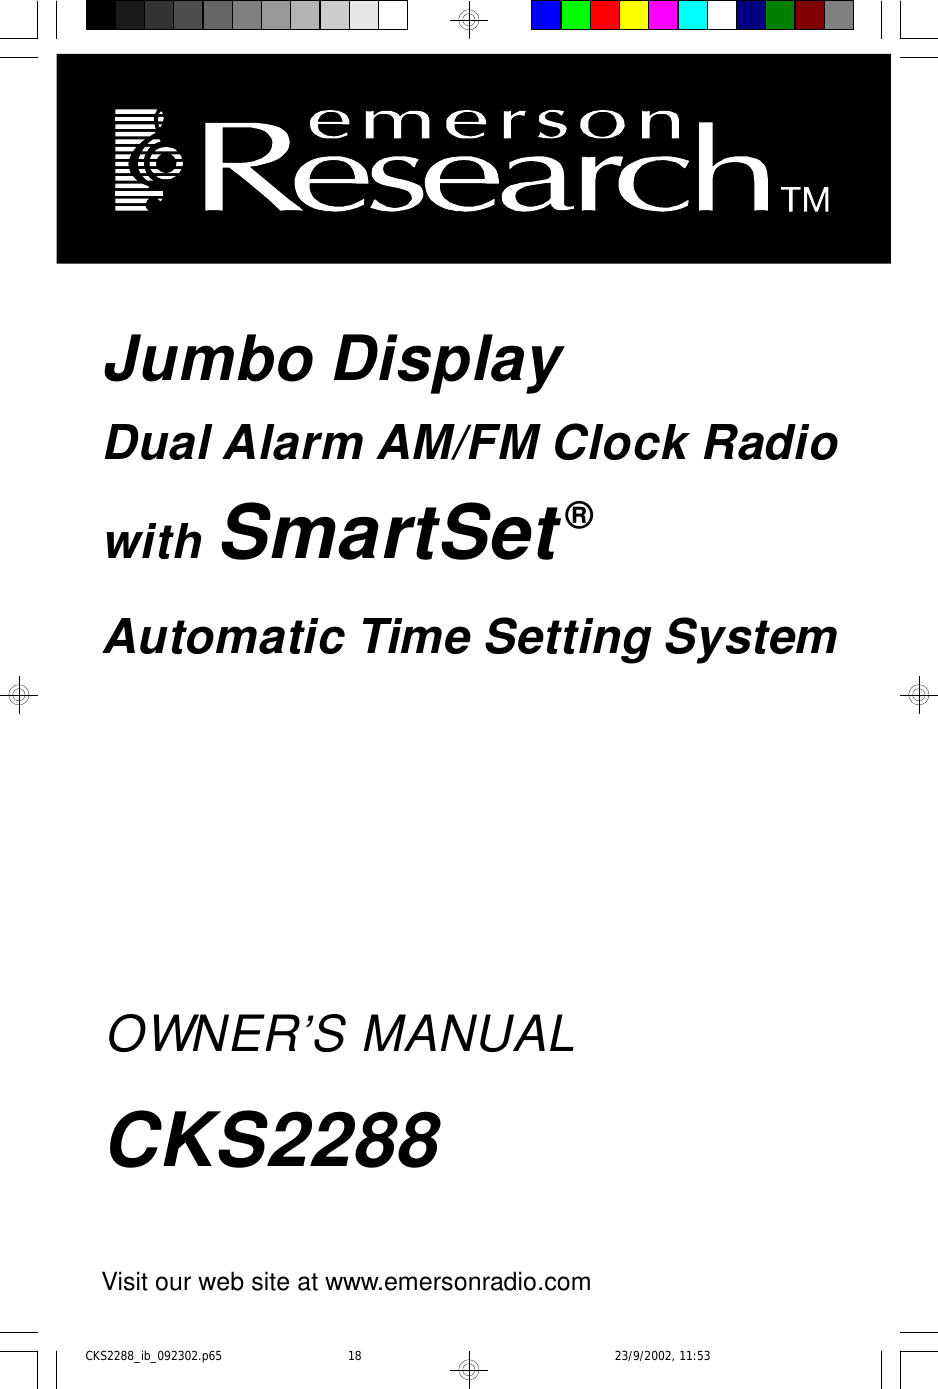 Emerson Cks2288 Owners Manual